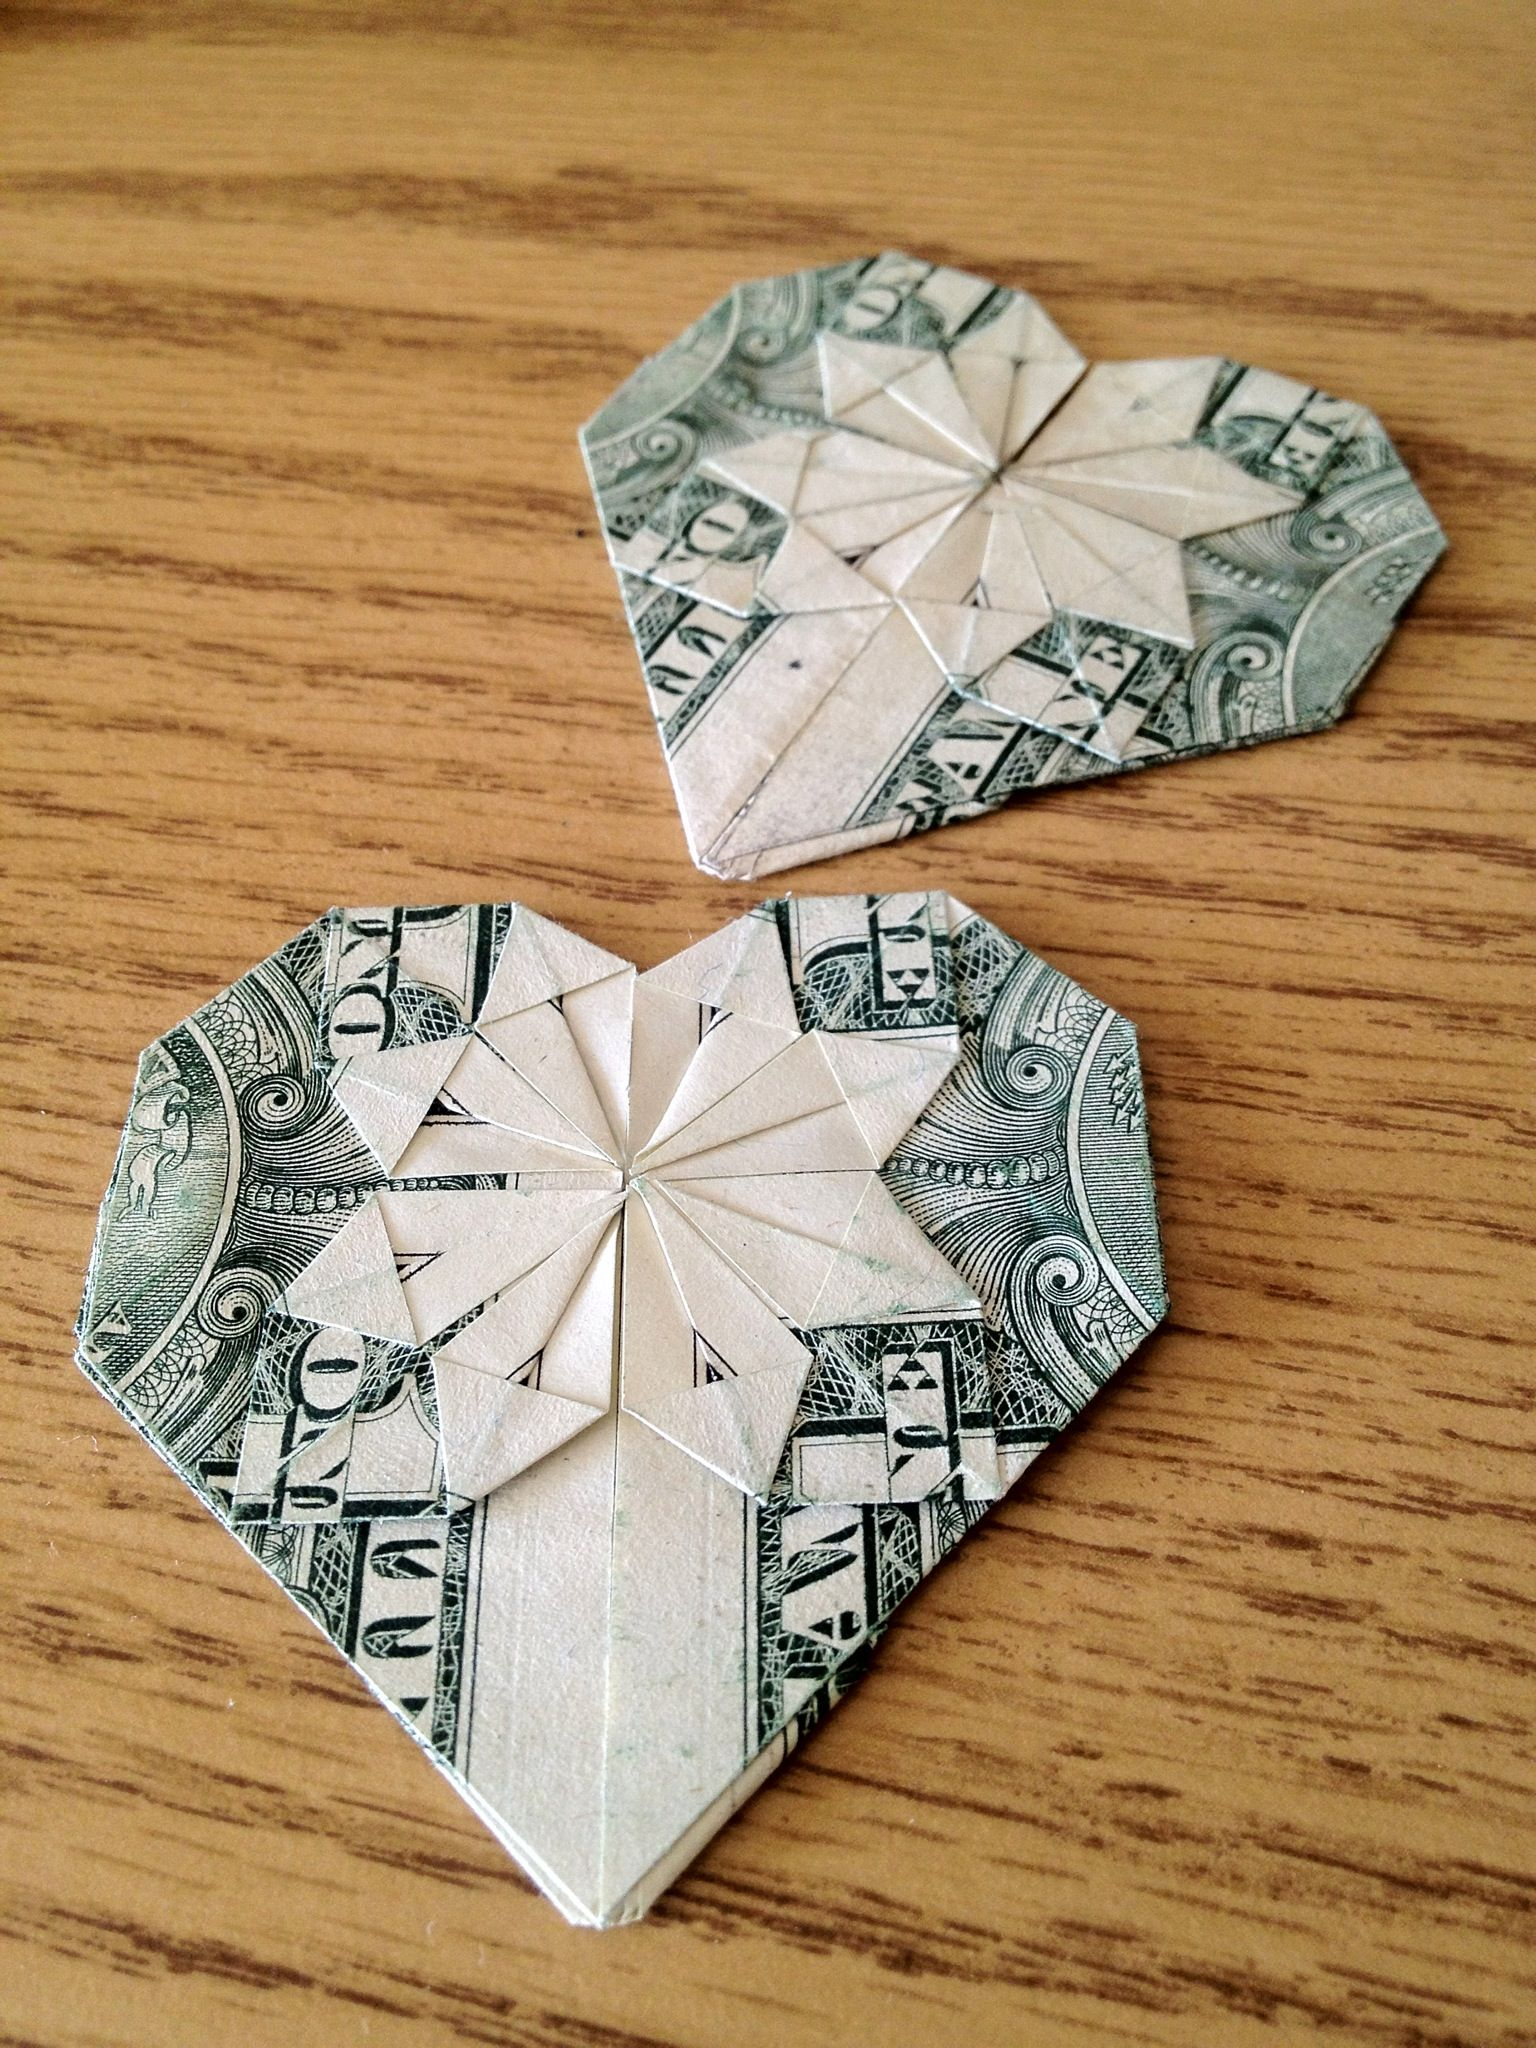 How To Make An Origami Heart From A Dollar Recipe Crafts